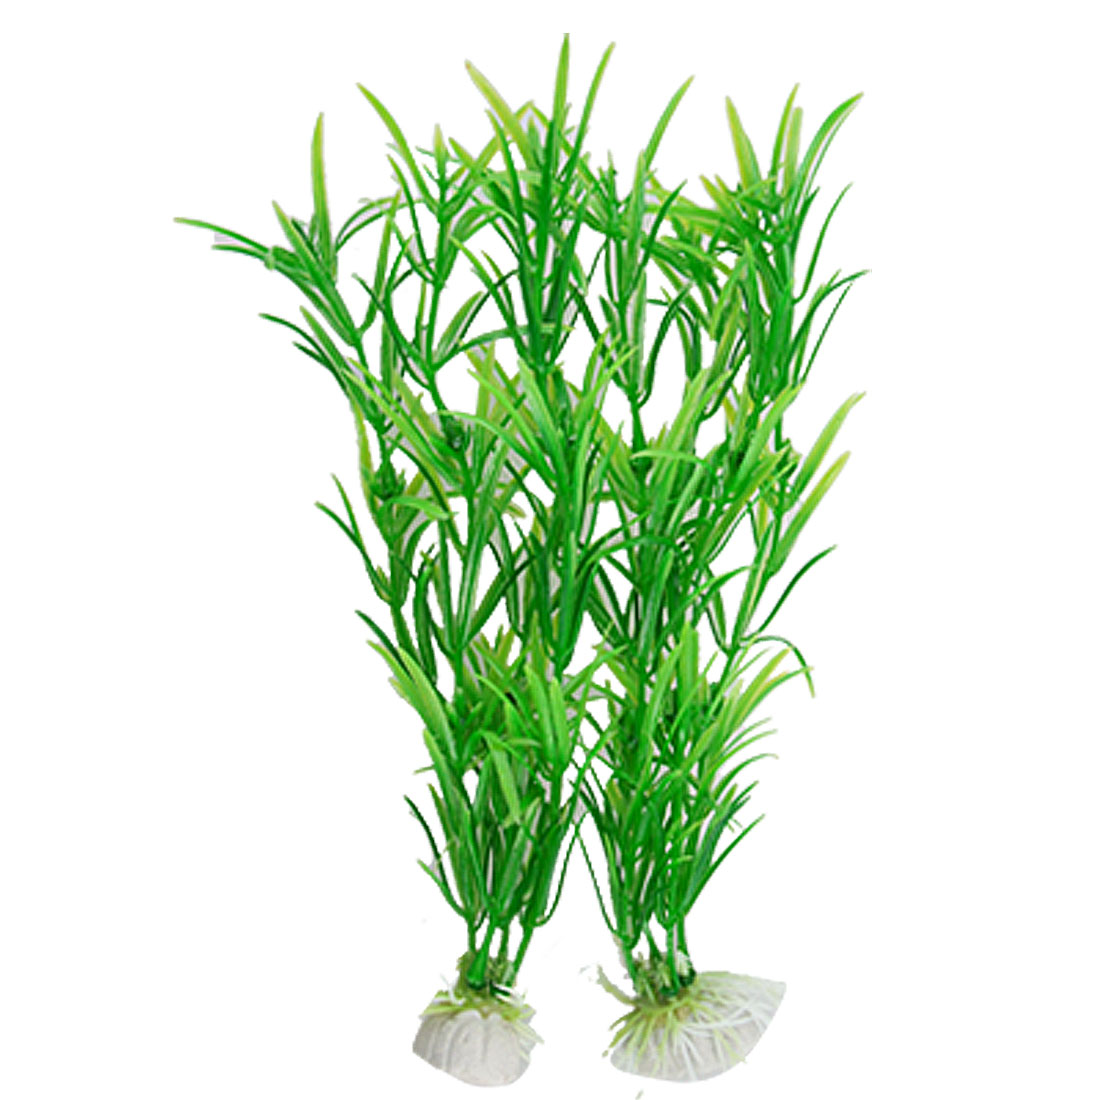 2 Pcs Decorative Green Water Plants Ornement for Fiah Tank